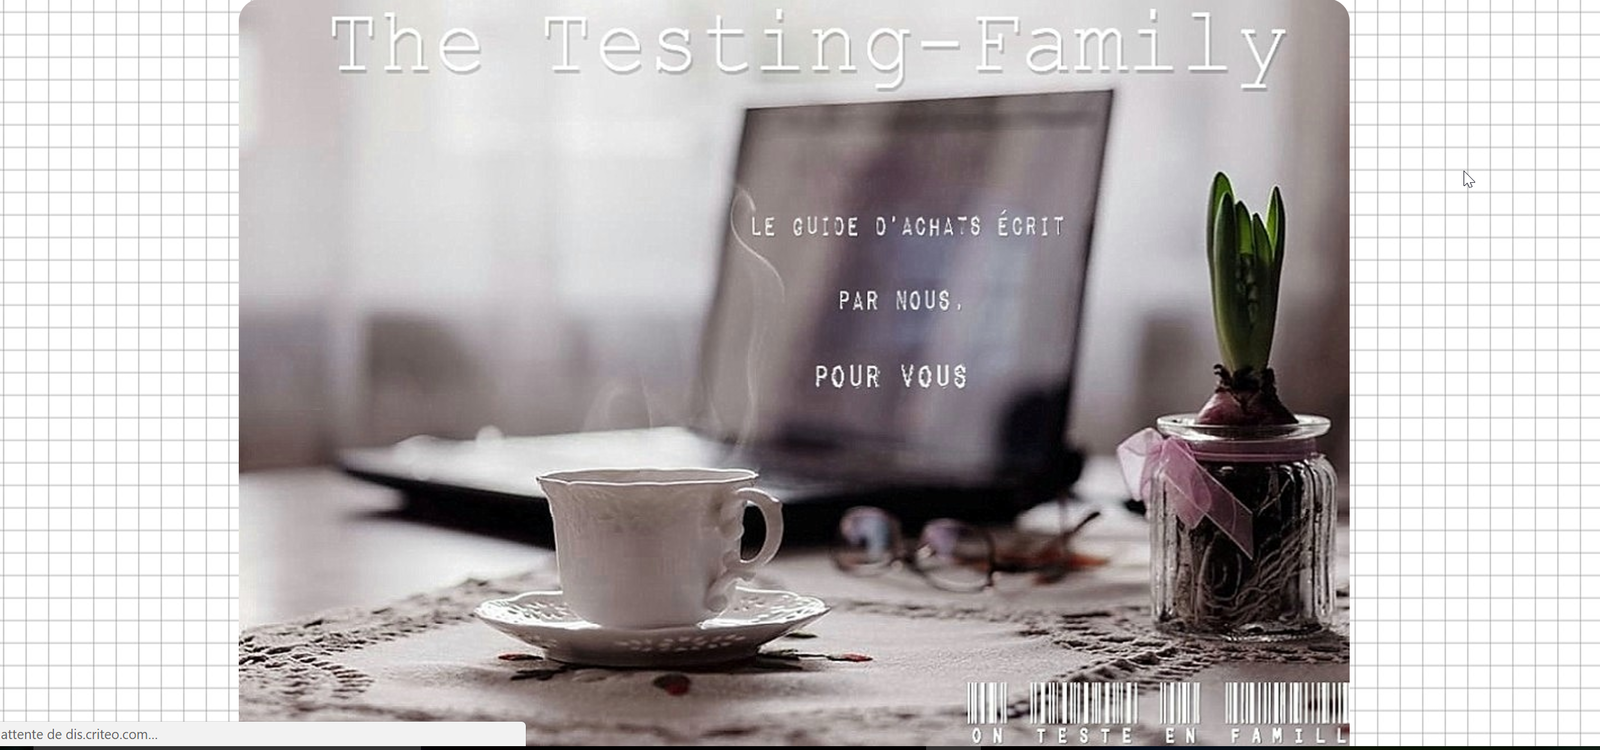 The testing-family